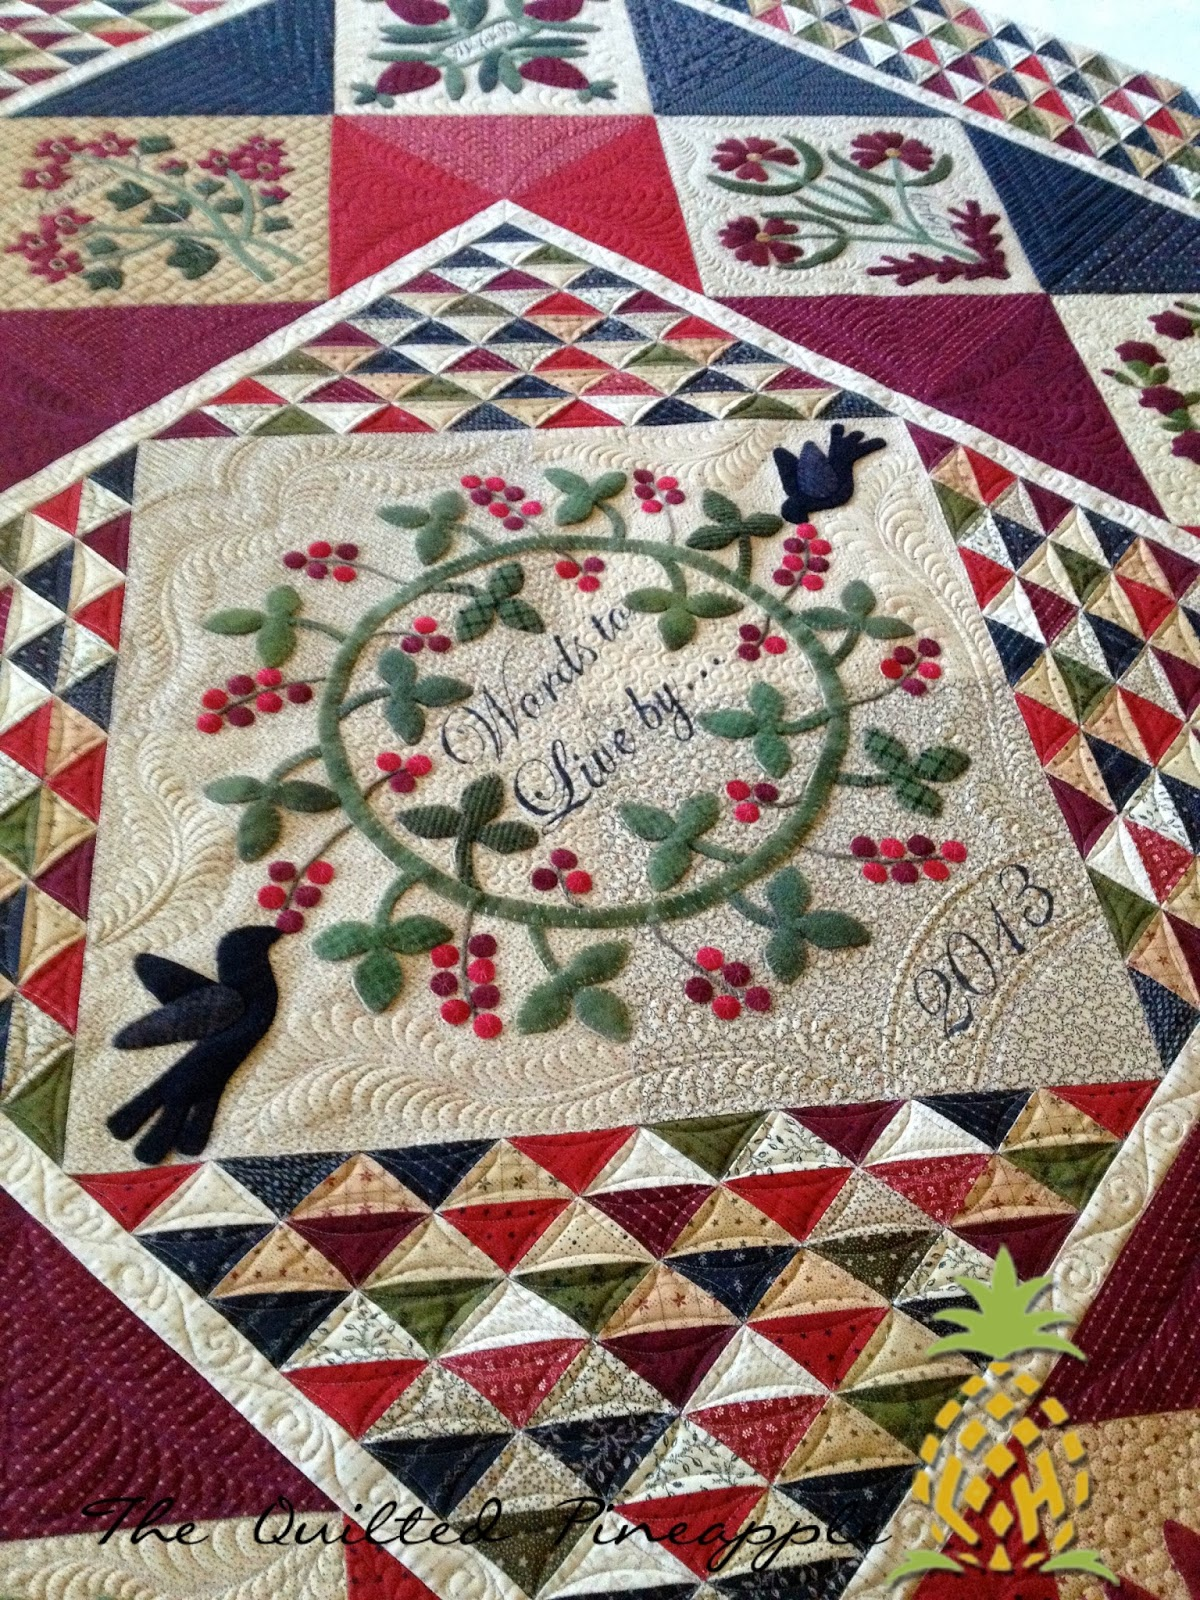 Words to Live By Quilt Kit - Complete - Wool, Cotton, Pattern